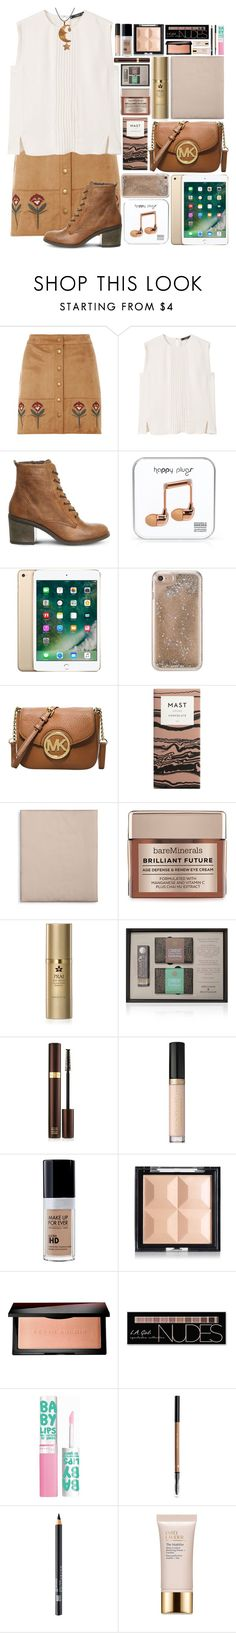 """""""🌜Set Me On Fire."""" by af1nda ❤ liked on Polyvore featuring Dorothy Perkins, MANGO, Office, Happy Plugs, Agent 18, Michael Kors, Hotel Collection, Bare Escentuals, Melchior & Balthazar and Tom Ford"""